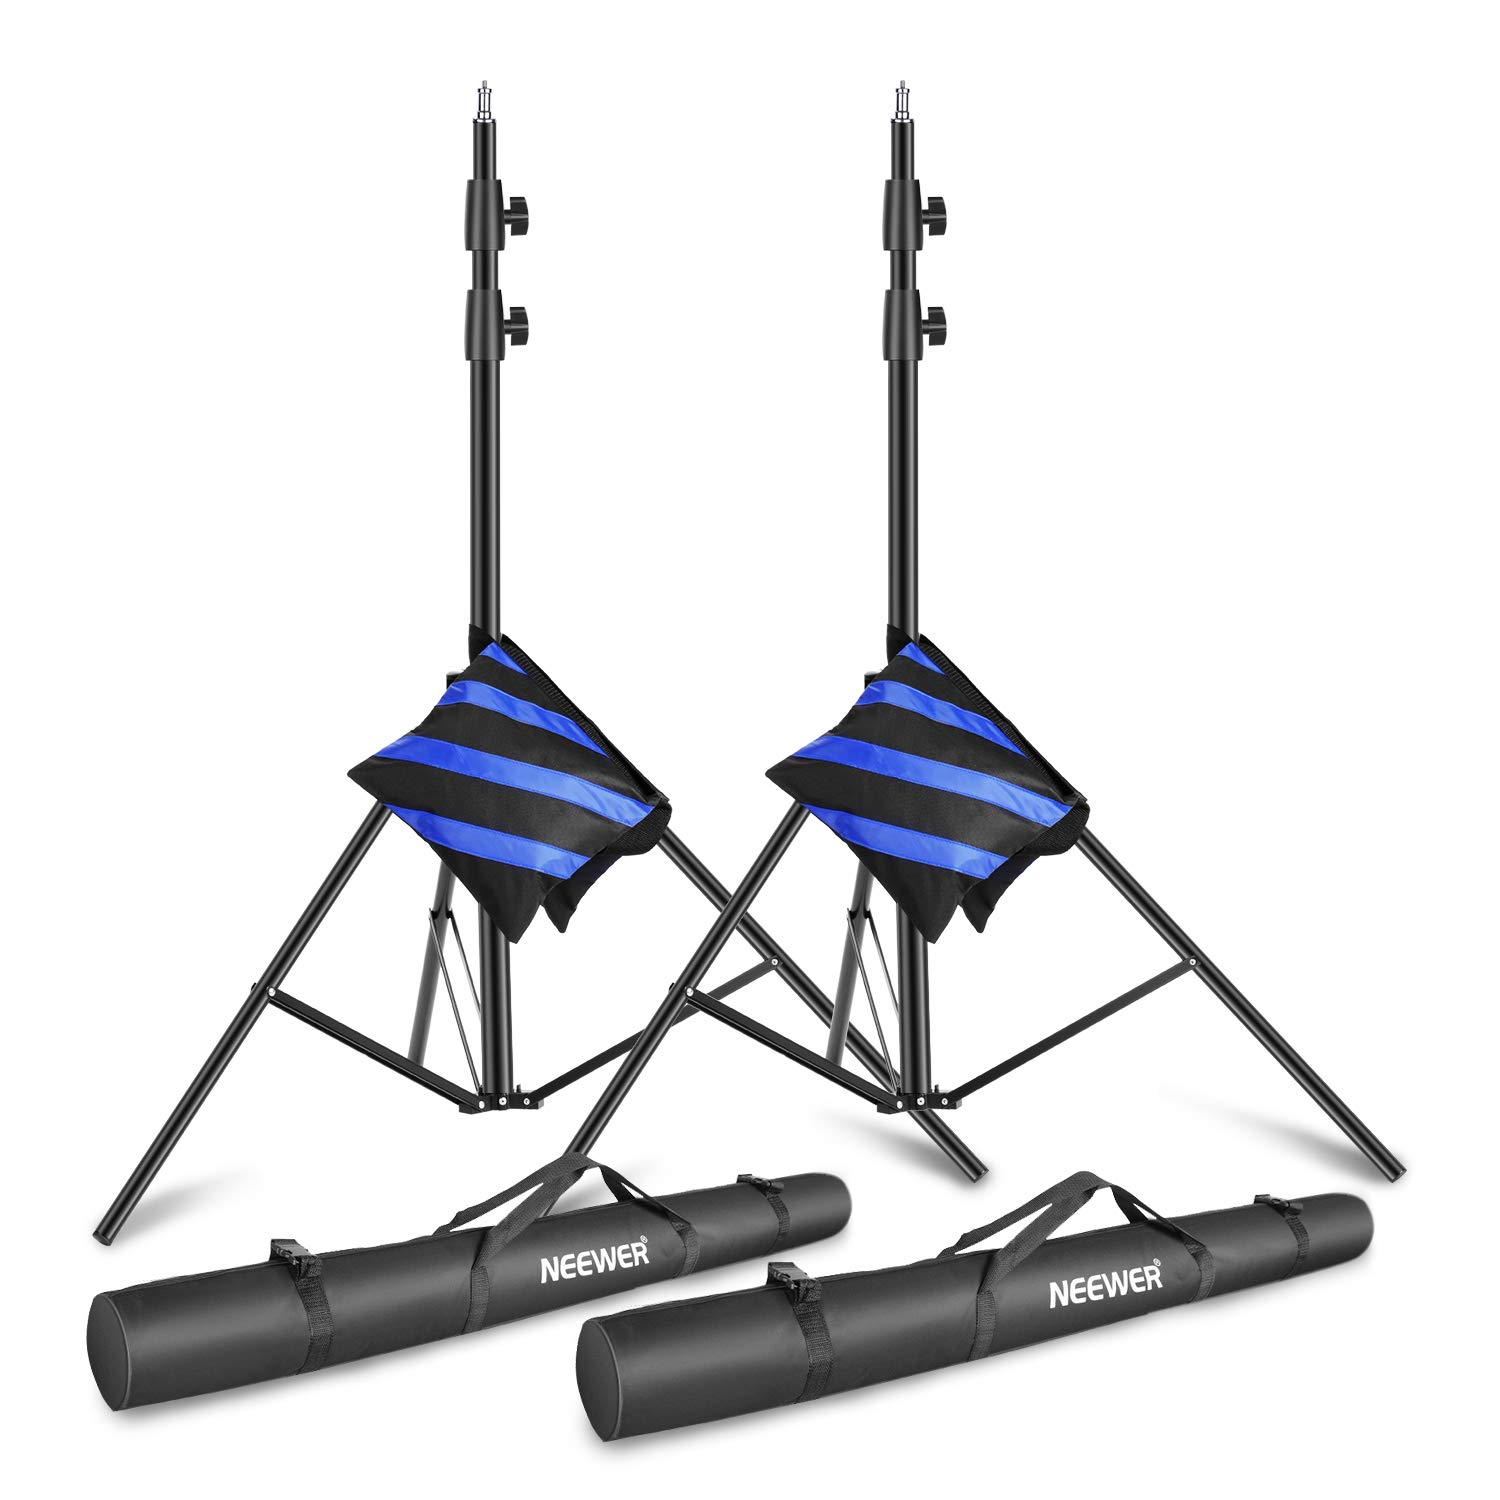 Neewer Light Stands 10 Feet/3 Meters, Pro Heavy Duty Spring Cushioned, All Metal Locking Collars, Set of 2 (Black Finish) with Carry Bags and Sandbags for Photo Video Photography HTC Vive, etc by Neewer